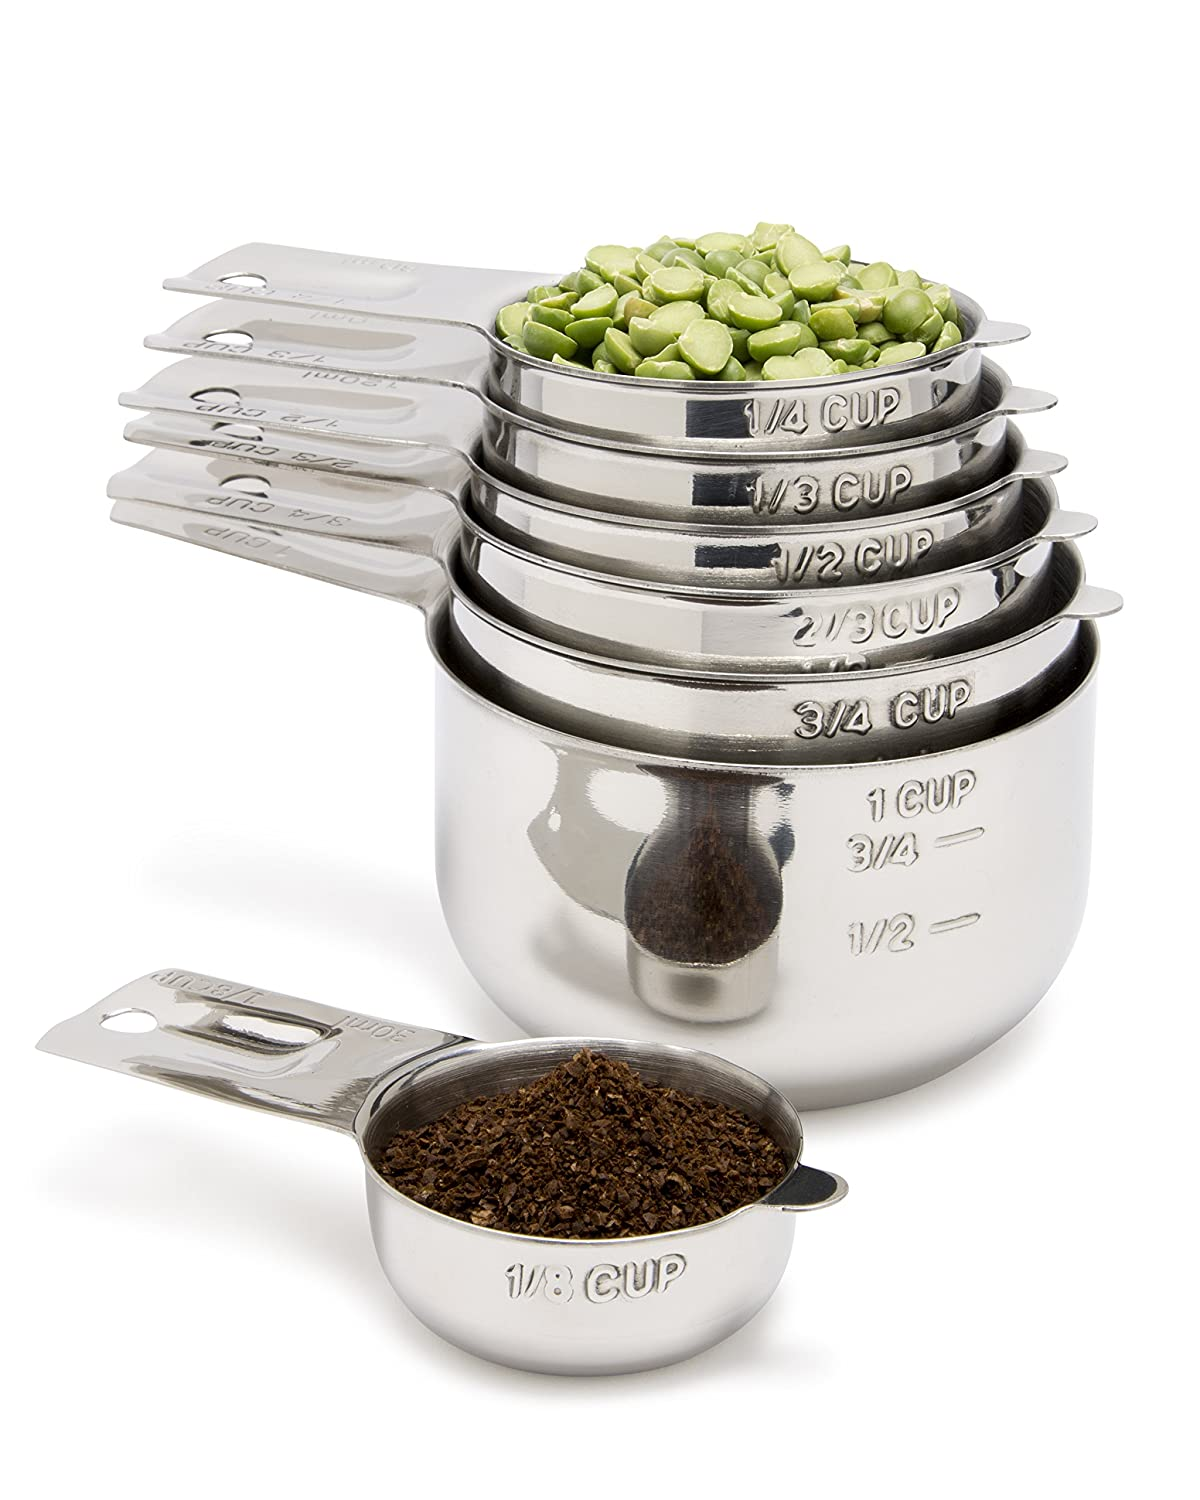 Simply Gourmet Measuring Cups 7 Piece Set With 1/8 Cup Coffee Scoop. Stainless Steel Measuring Cups That Nest For Easy Storage